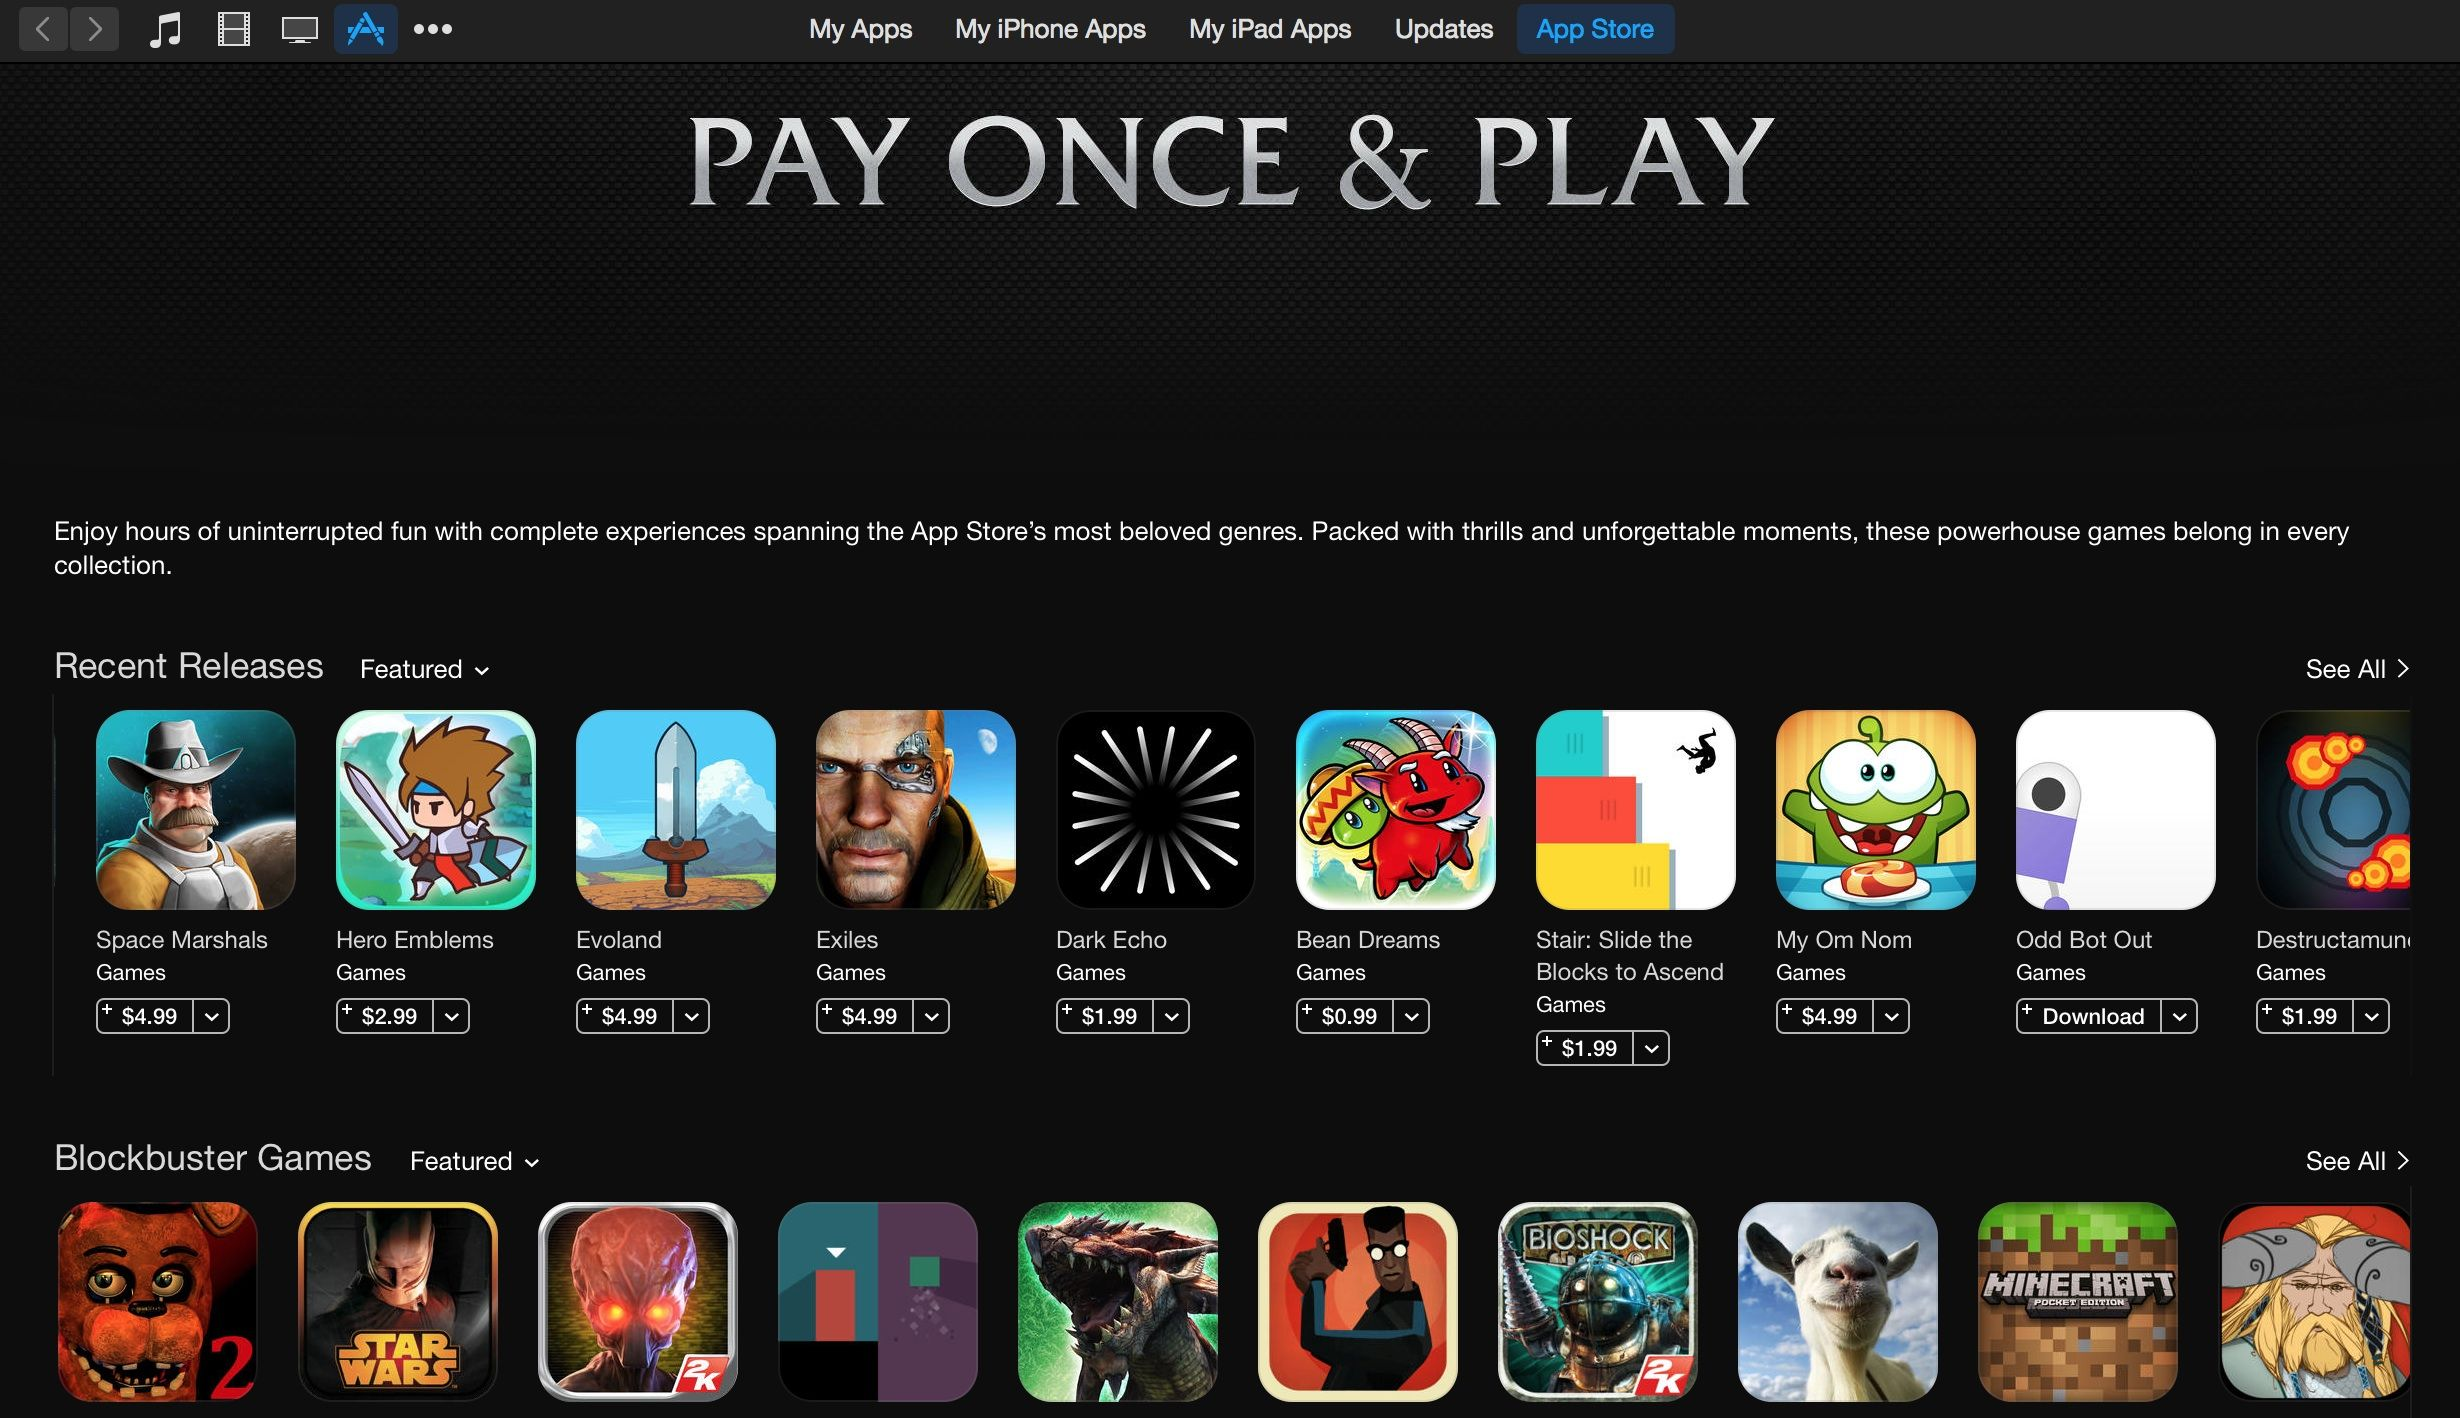 Pay Once and Play: The best games with no in-app purchases